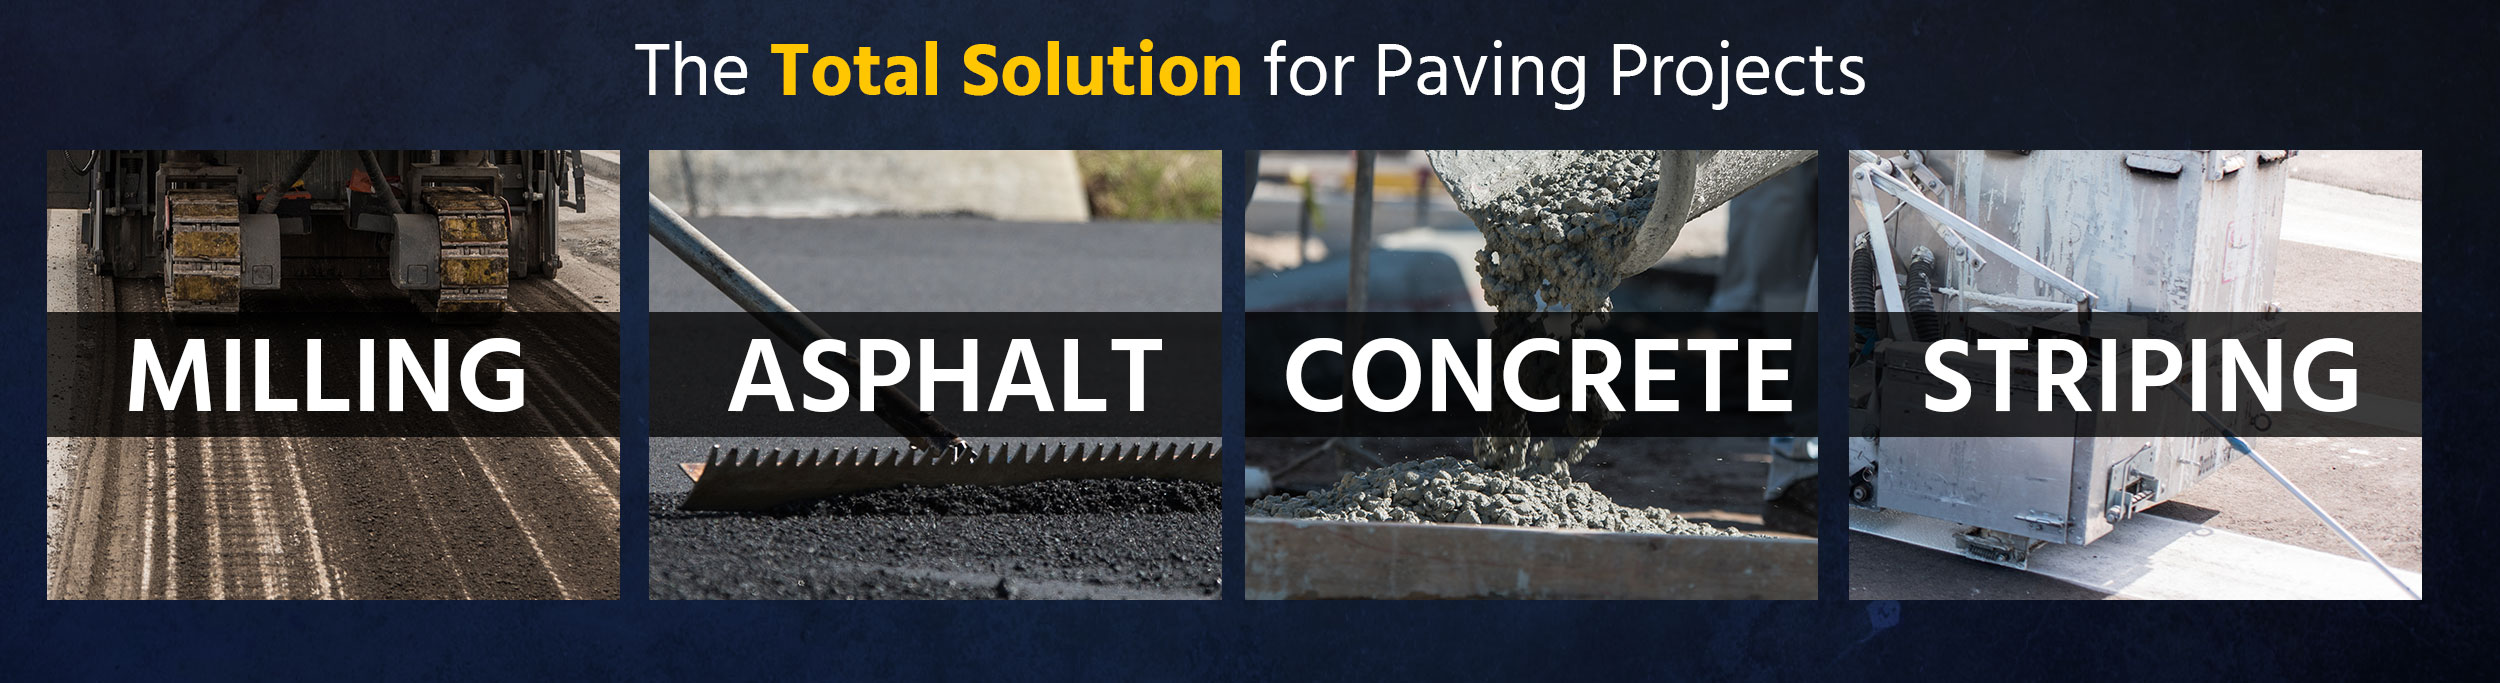 We are the Total Solution for Paving Projects - Collier Paving and Concrete